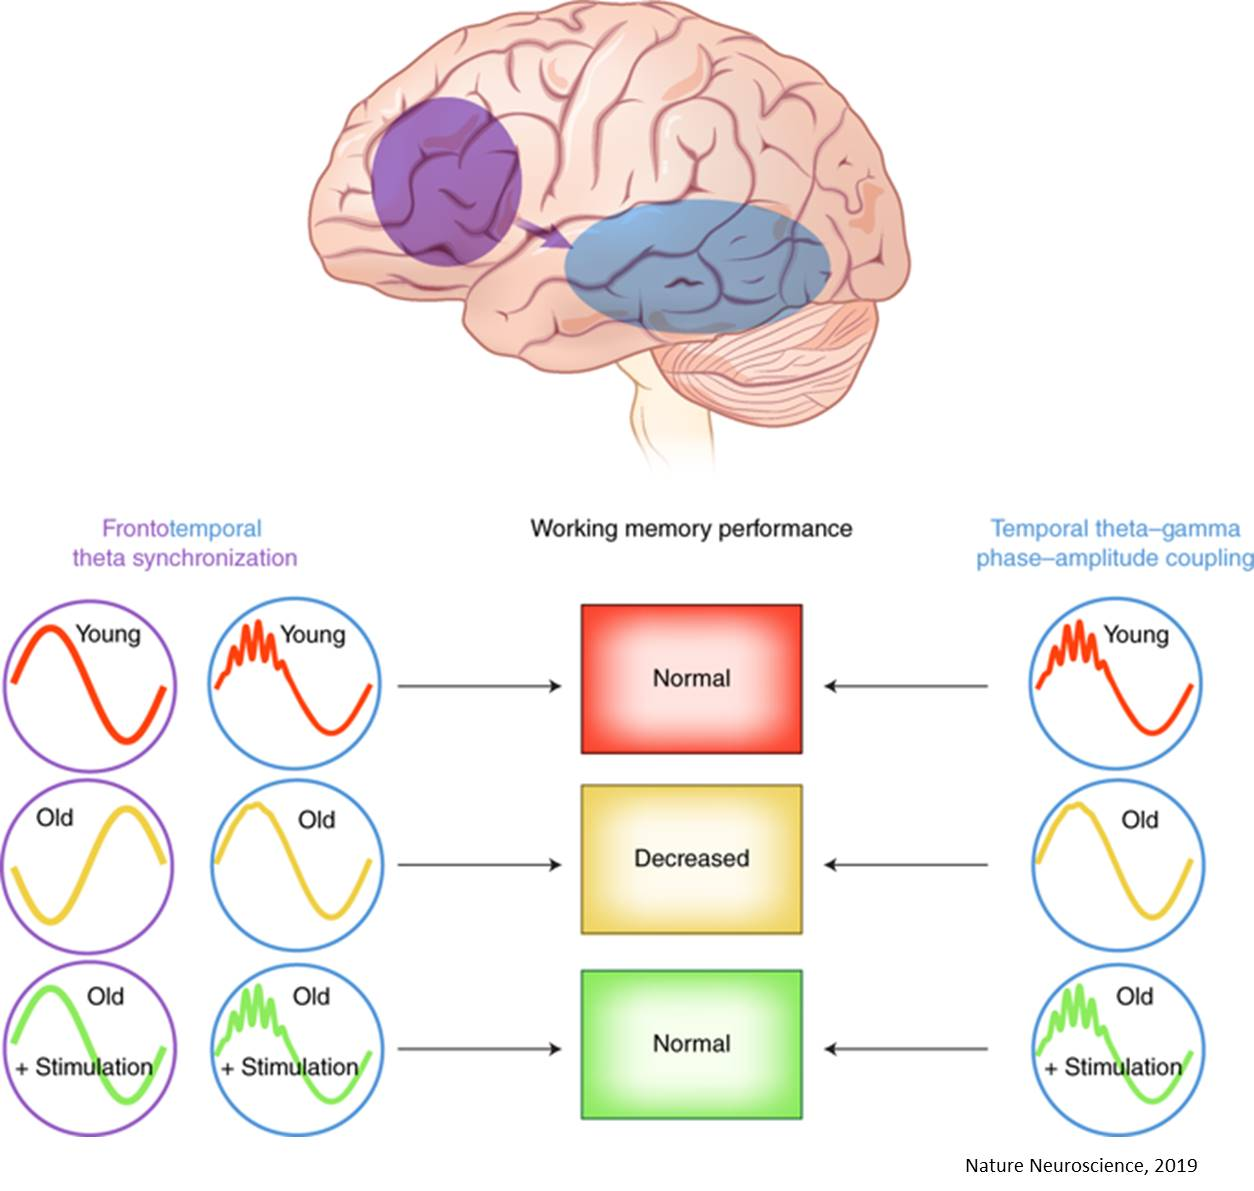 Electrostimulation synchronizes brain circuits to improve working memory